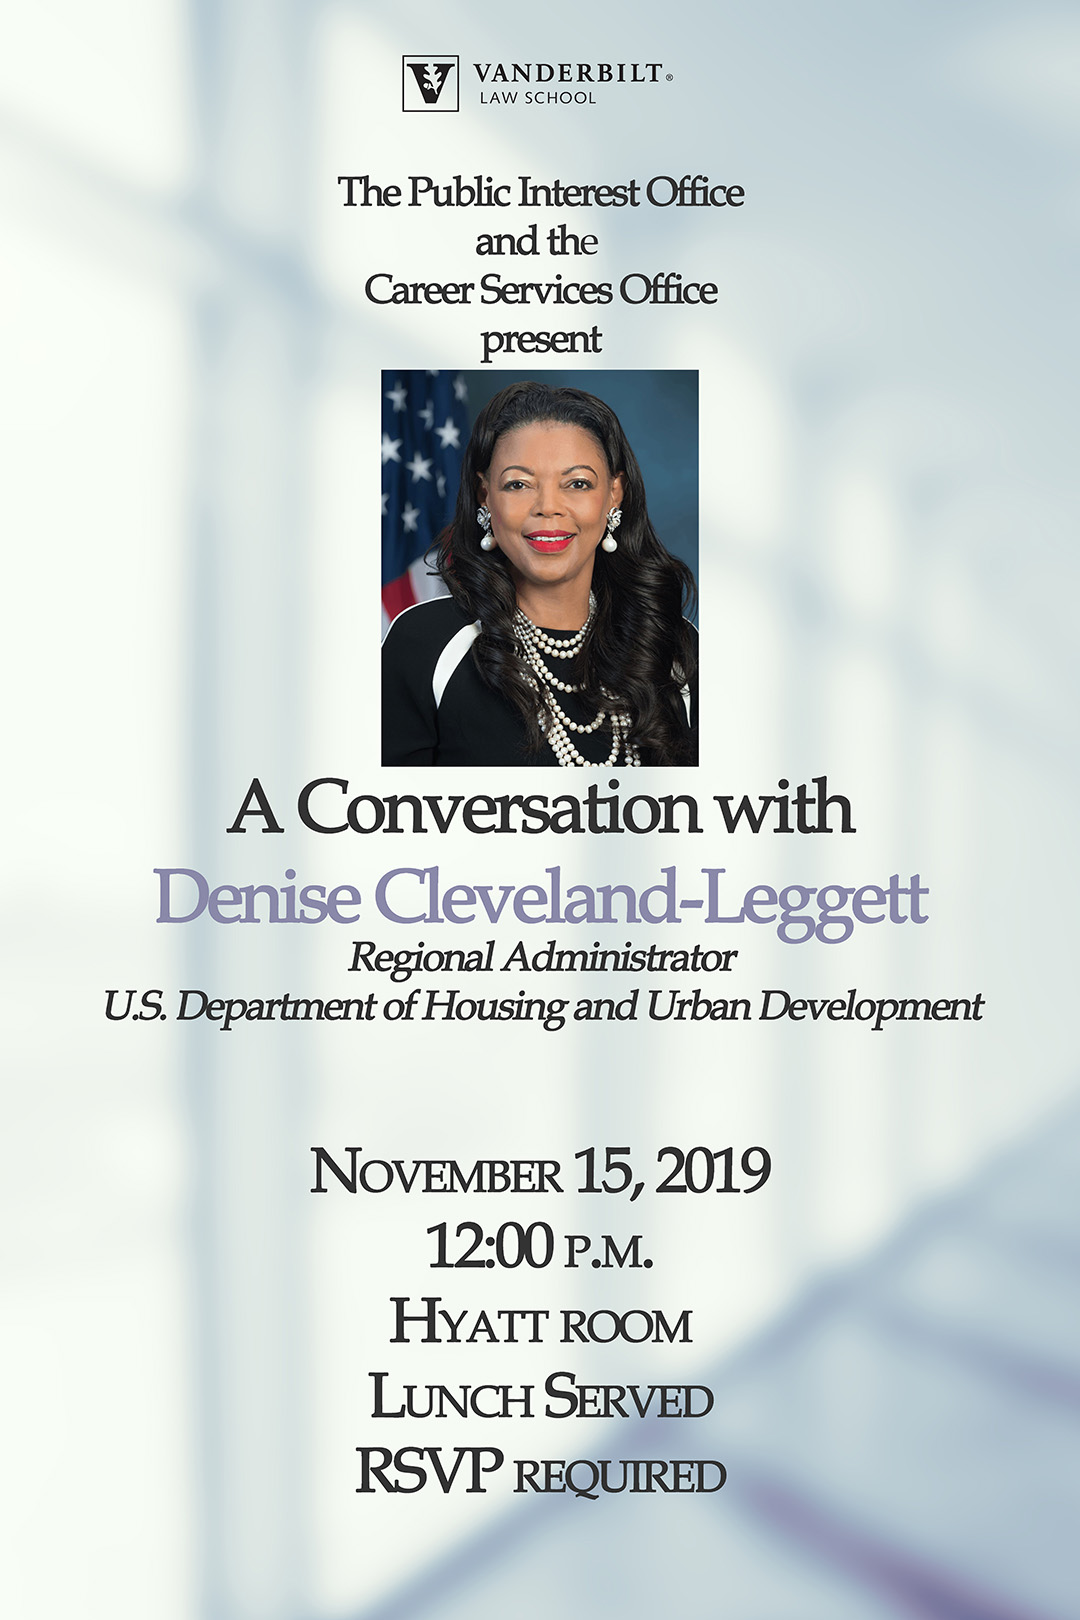 Image of event poster for Denise Cleveland-Leggett